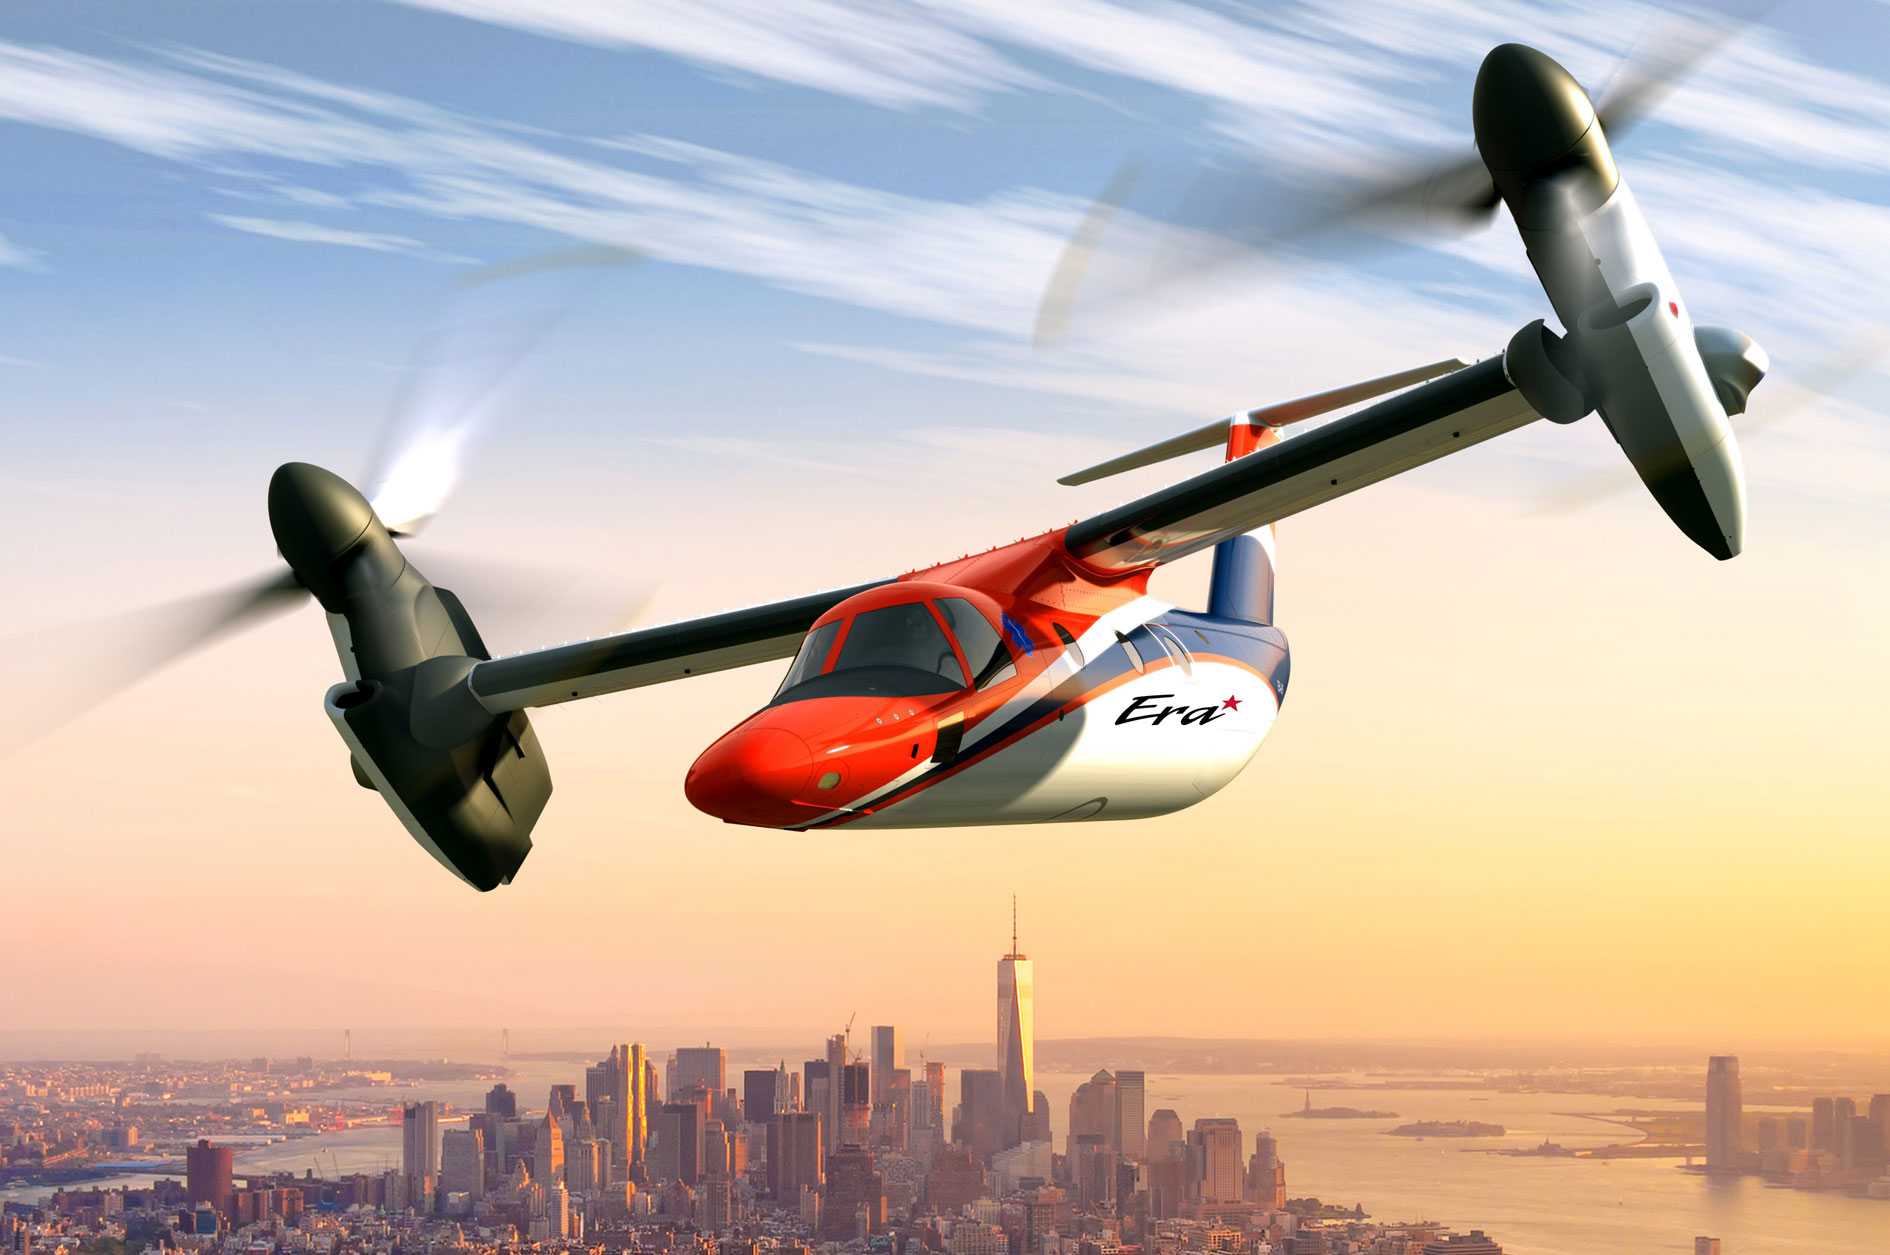 ERA Group To Mark Entry Of AW609 Tiltrotor Into The US